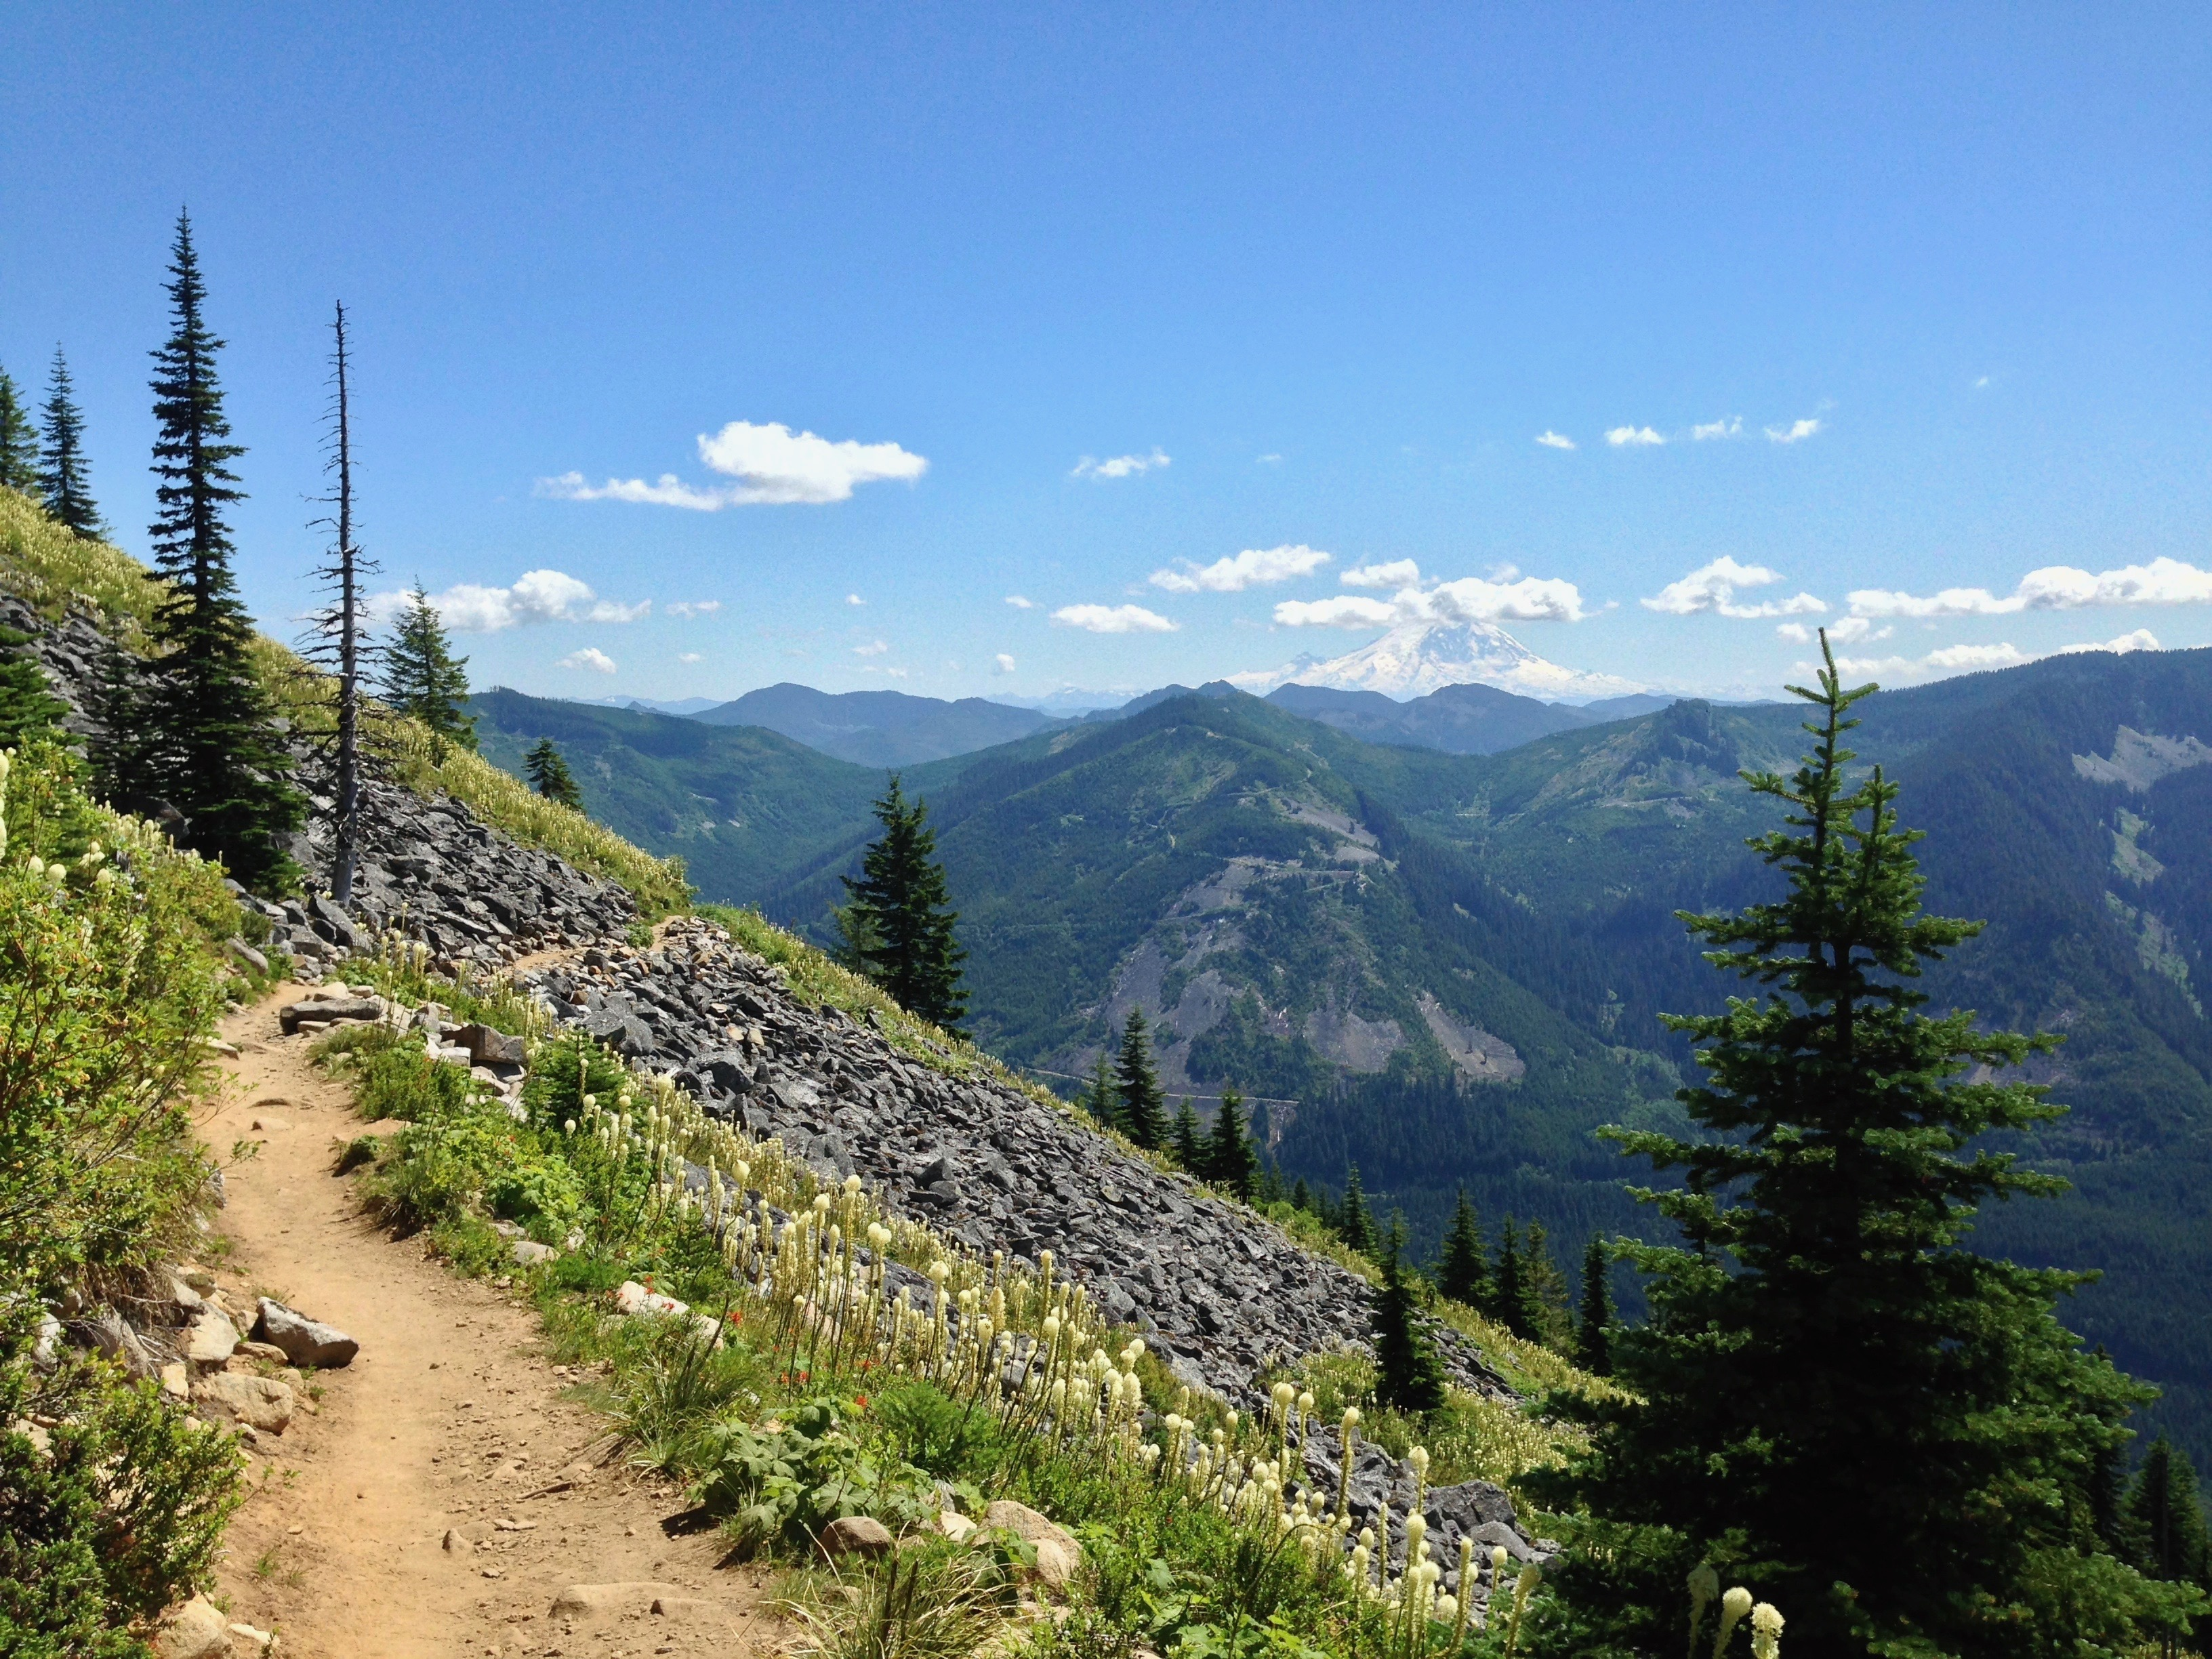 Above the treeline, the trail flattens as it continues across Bandera Mountain's open flank, where a backward glance affords a picturesque glimpse of Mt. Rainier rising to the southeast. Ira Spring Trail, July 09, 2014.